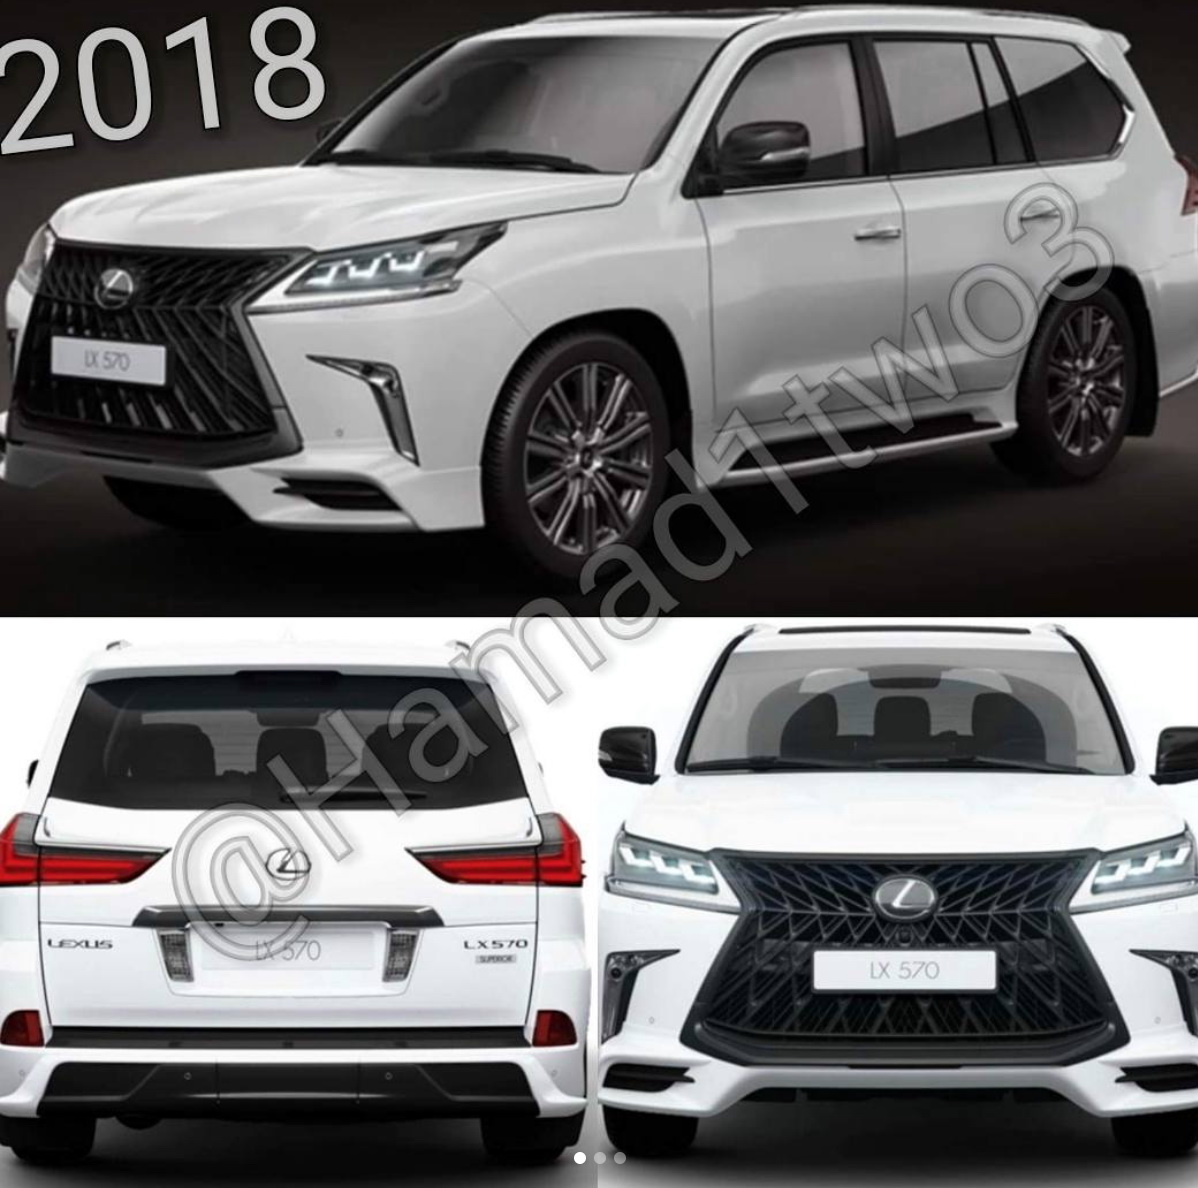 2018 lexus lx 570. perfect 2018 blocking ads can be devastating to sites you love and result in people  losing their jobs negatively affect the quality of content on 2018 lexus lx 570 l